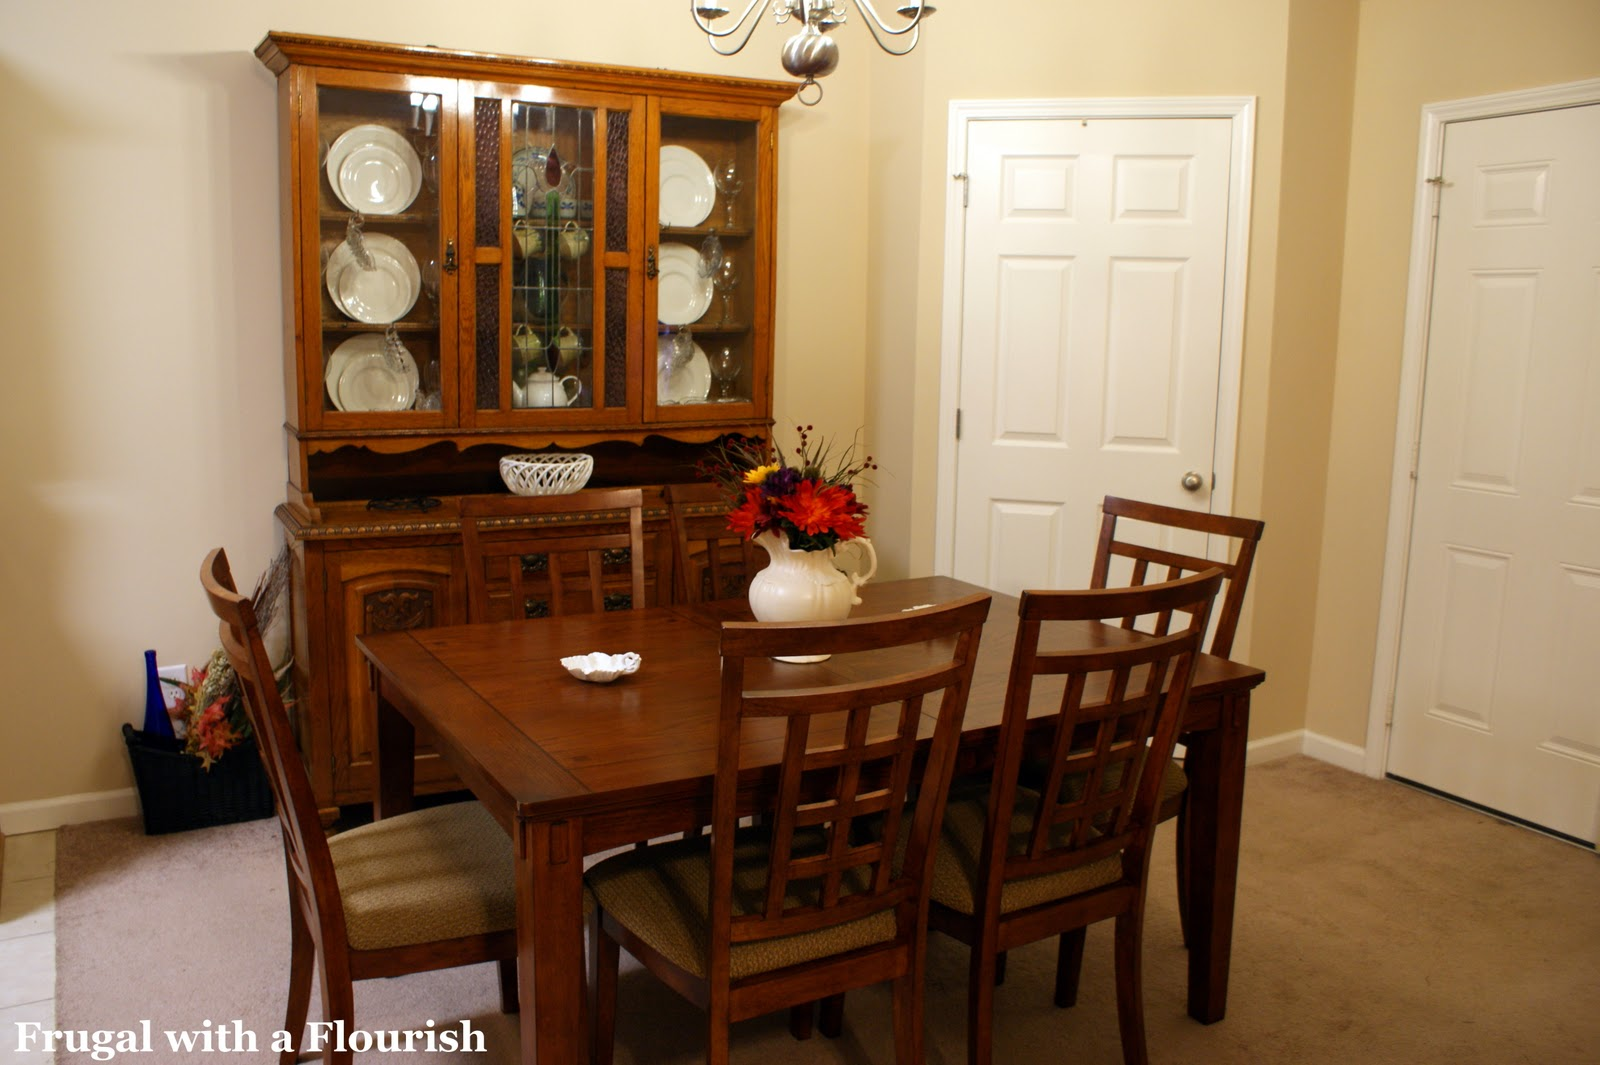 Ashley Furniture Dining Room Table Inventory